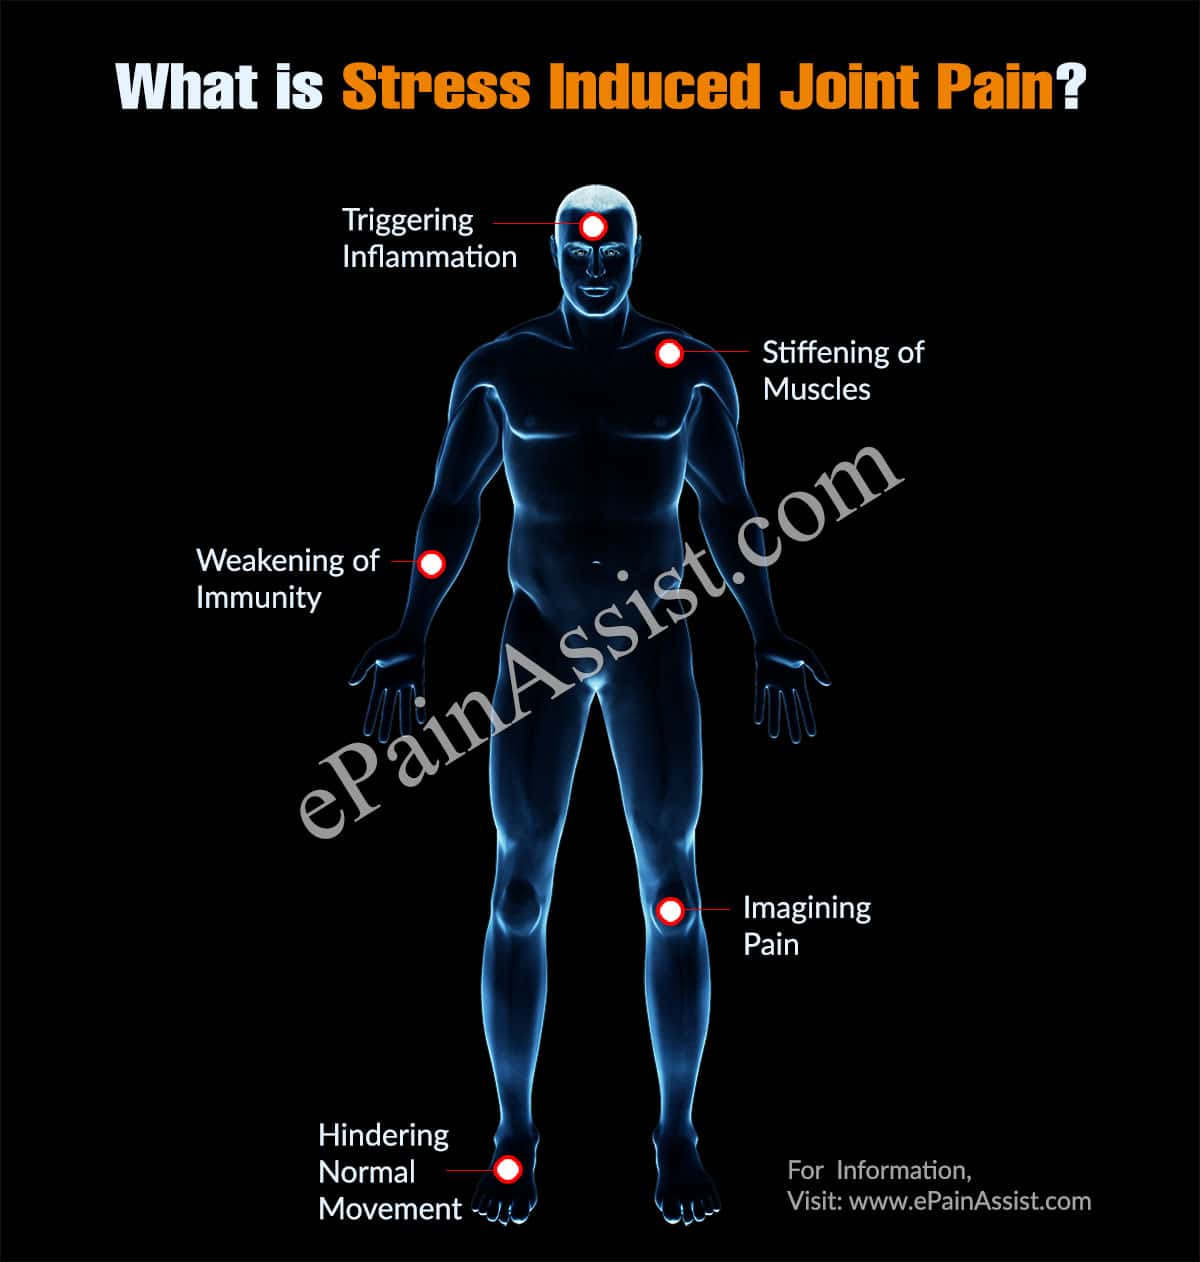 What is Stress Induced Joint Pain?